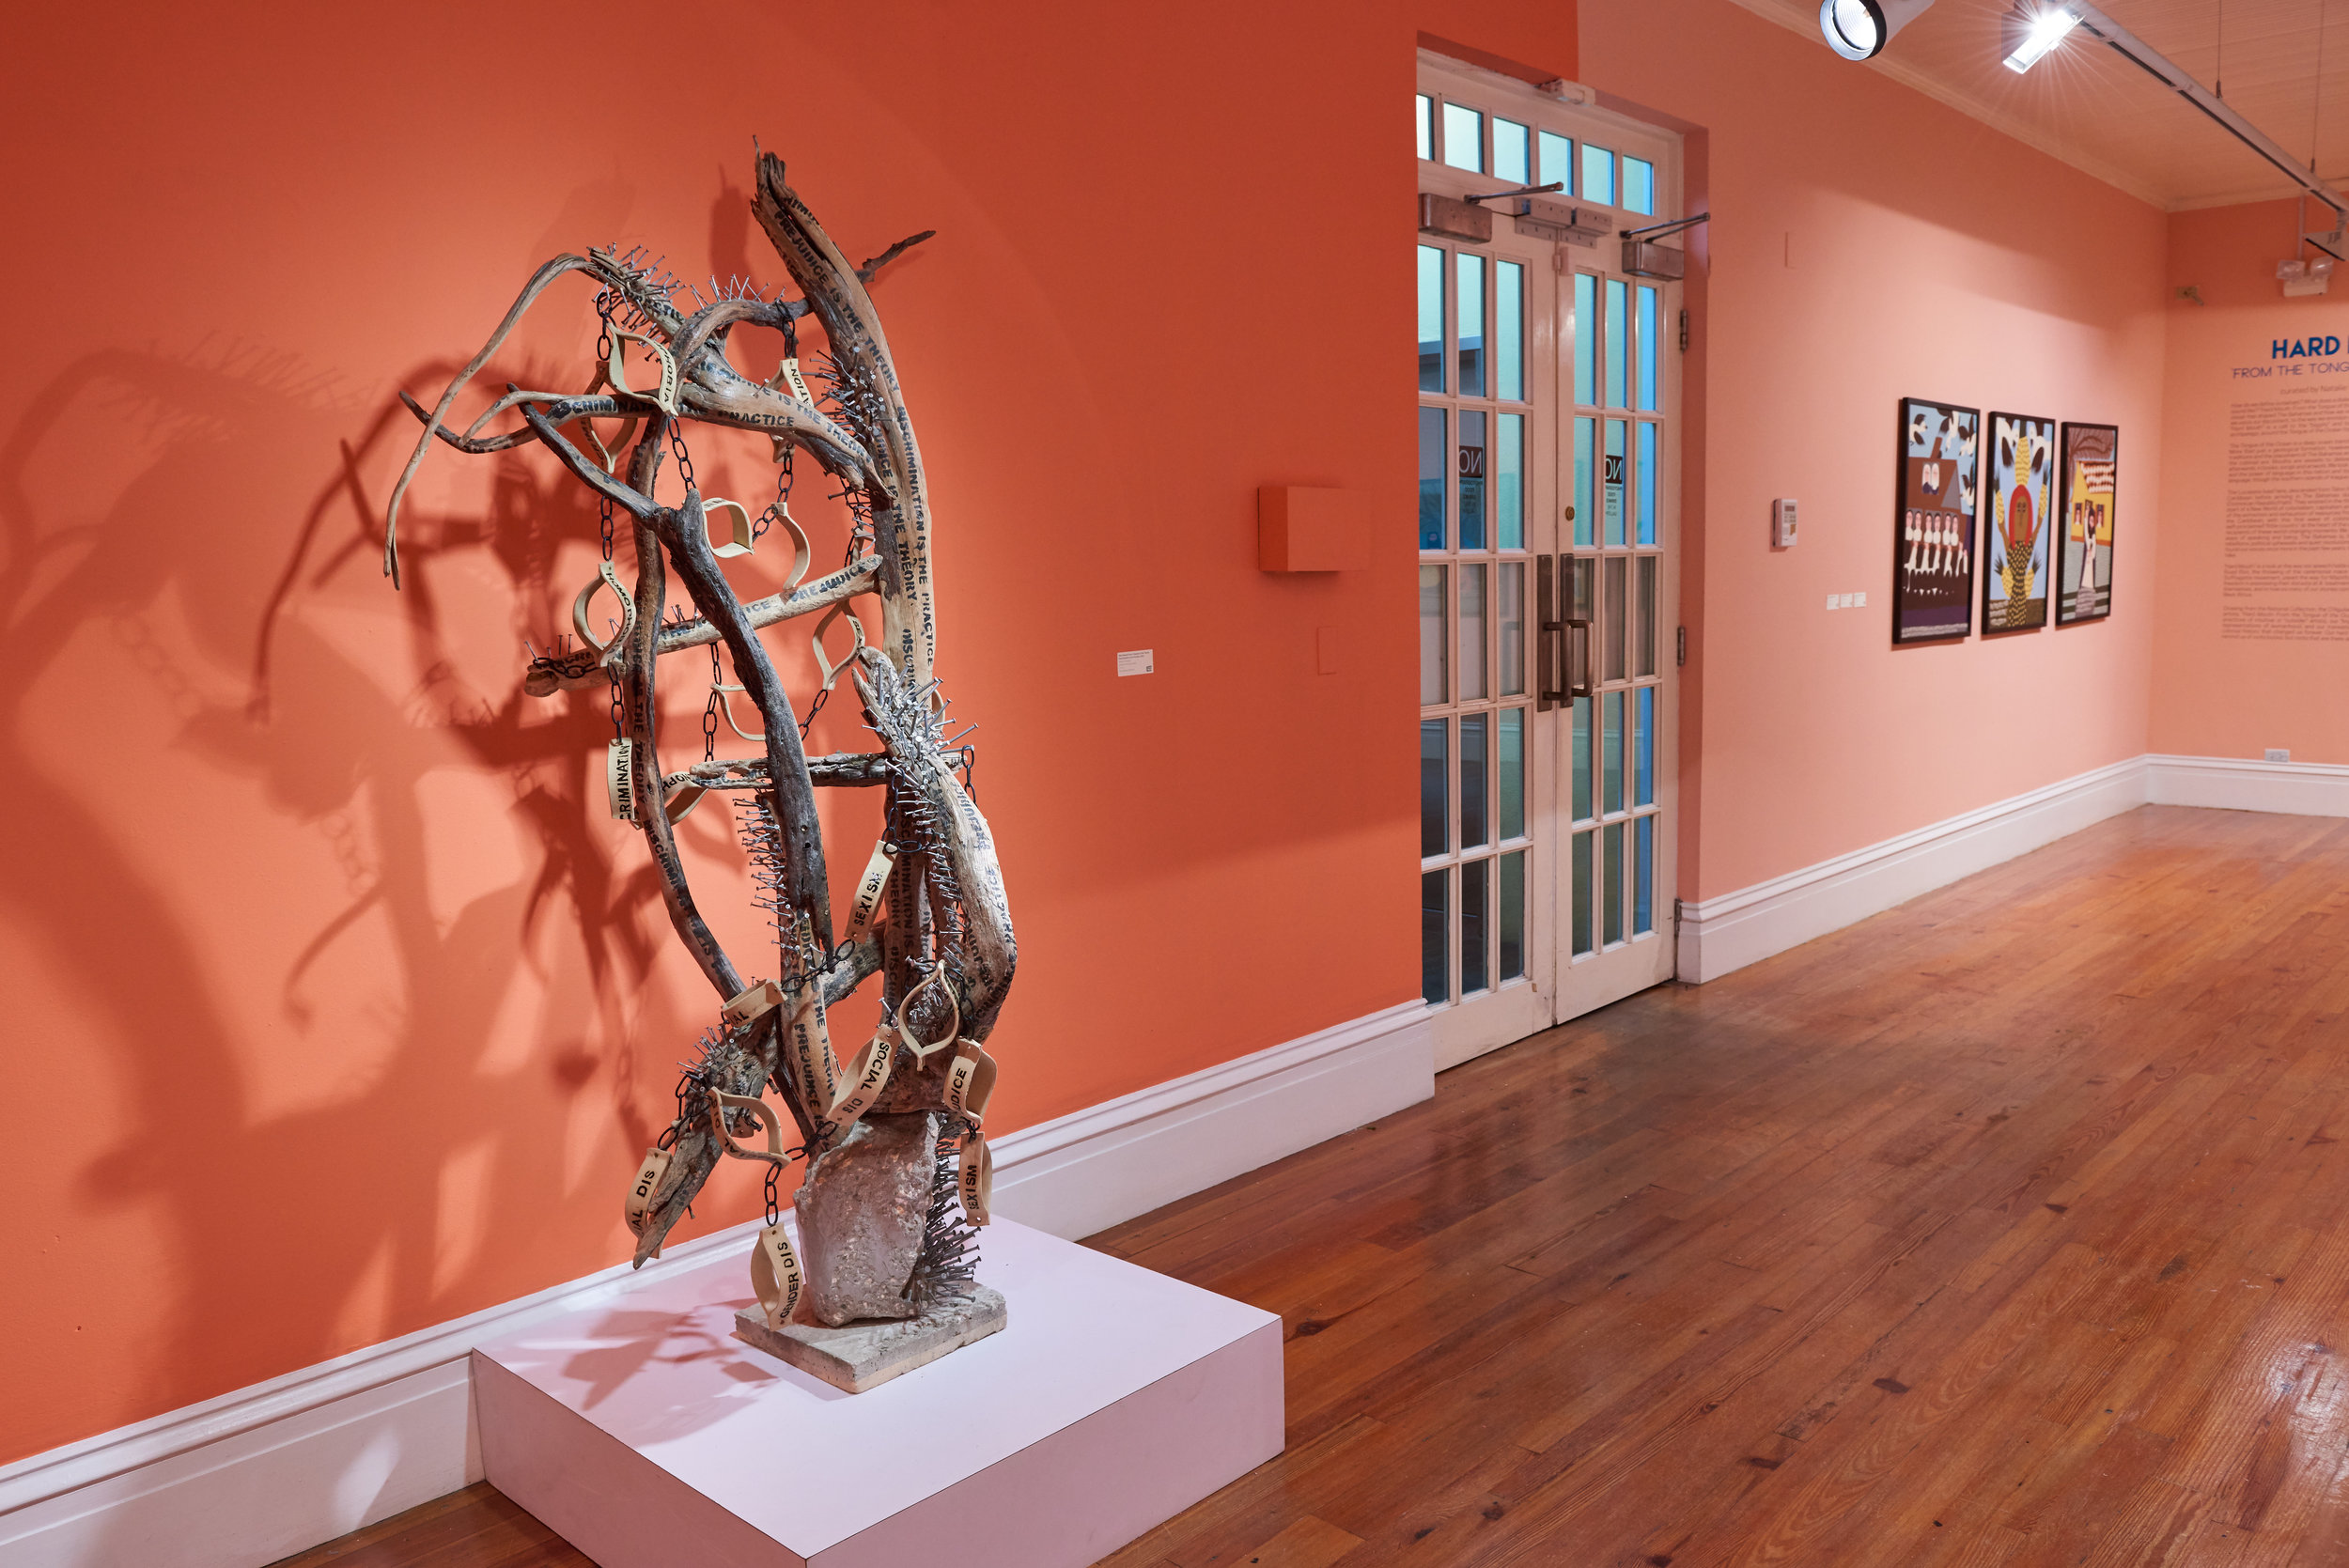 Nkisi/Nkondi Figure: Prejudice is the Theory, Discrimination is the Practice  (2012), Katrina Cartwright, ceramics and mixed media, 5'8 x 4'. Part of the National Collection. Images by Dante Carrer.